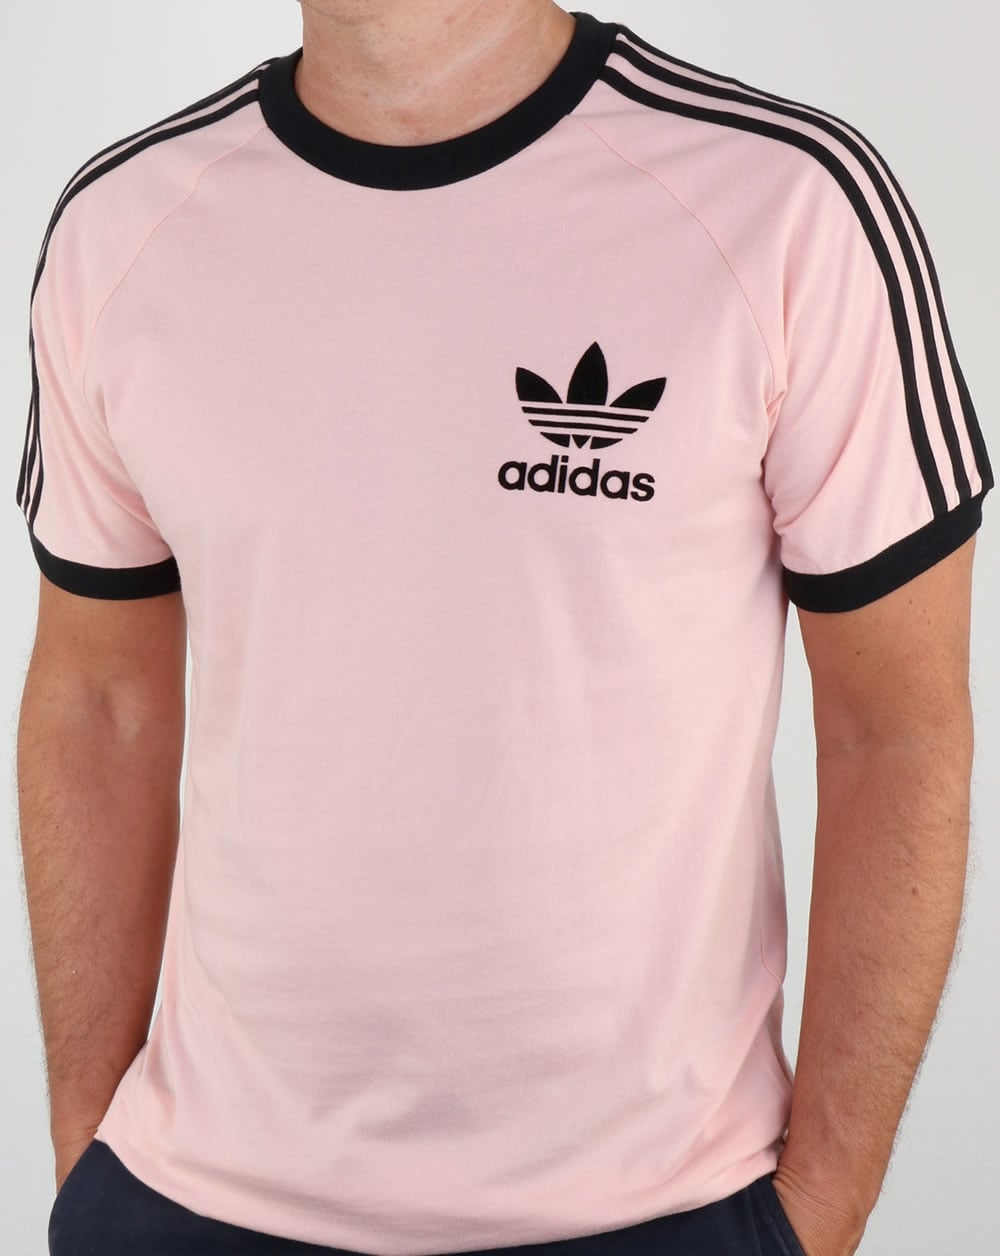 adidas Originals Adidas Originals Retro 3 Stripes T Shirt Pink/Black